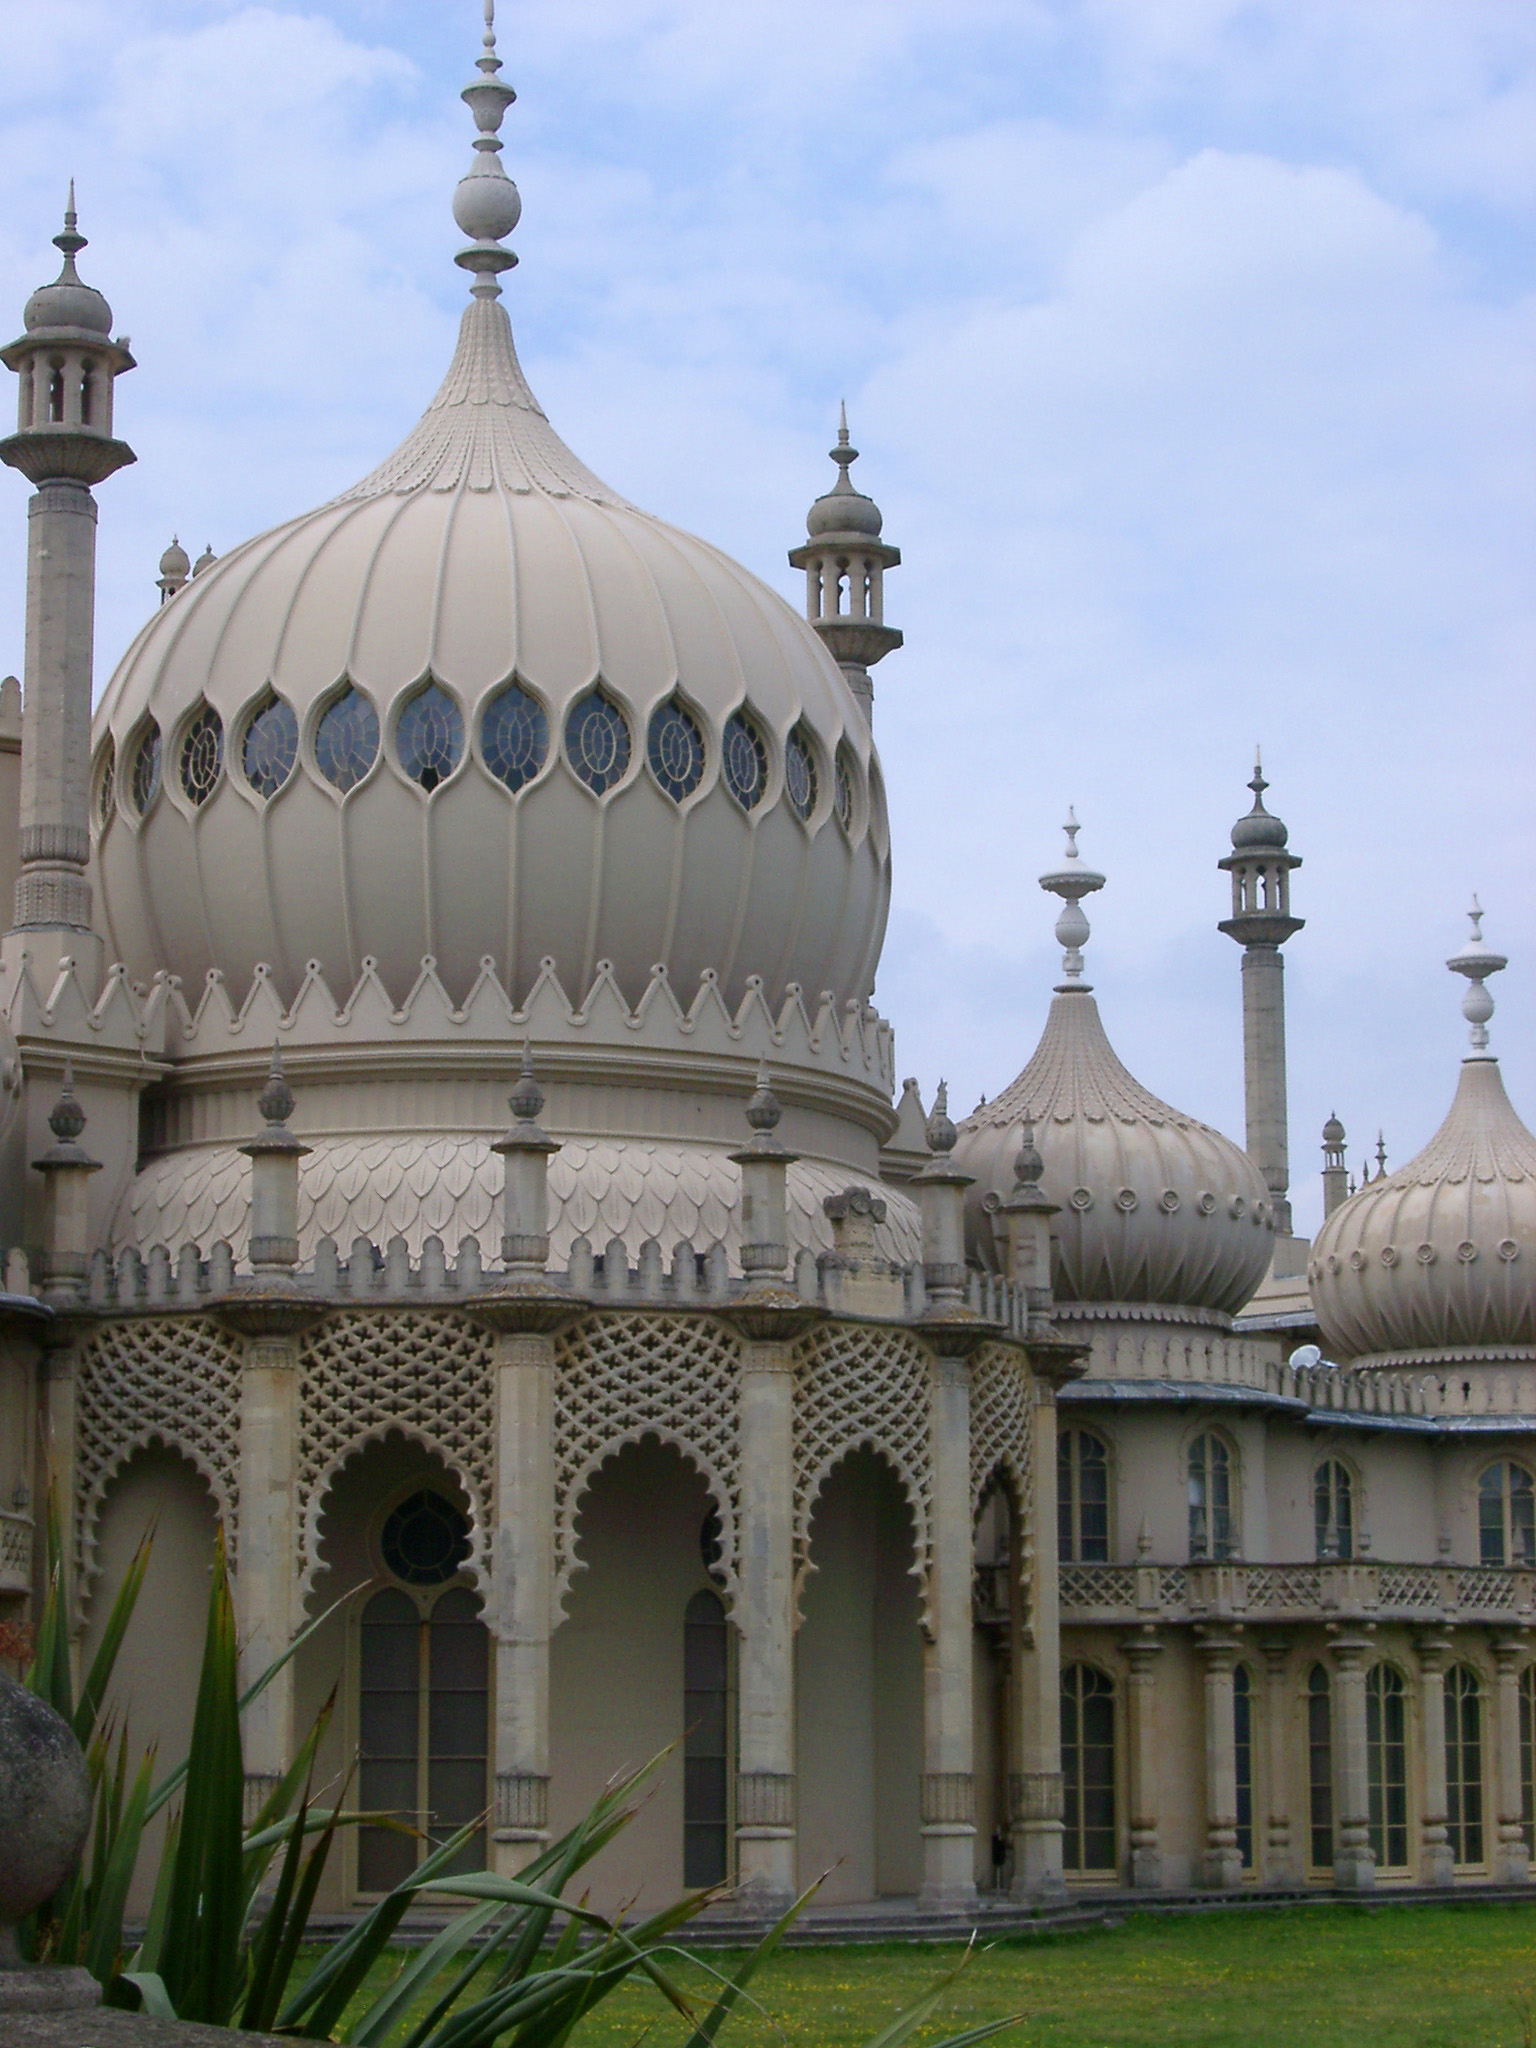 Dome of Famous Royal Pavilion Building on a Grassy Landscape. Located at Brighton, England, United Kingdom.